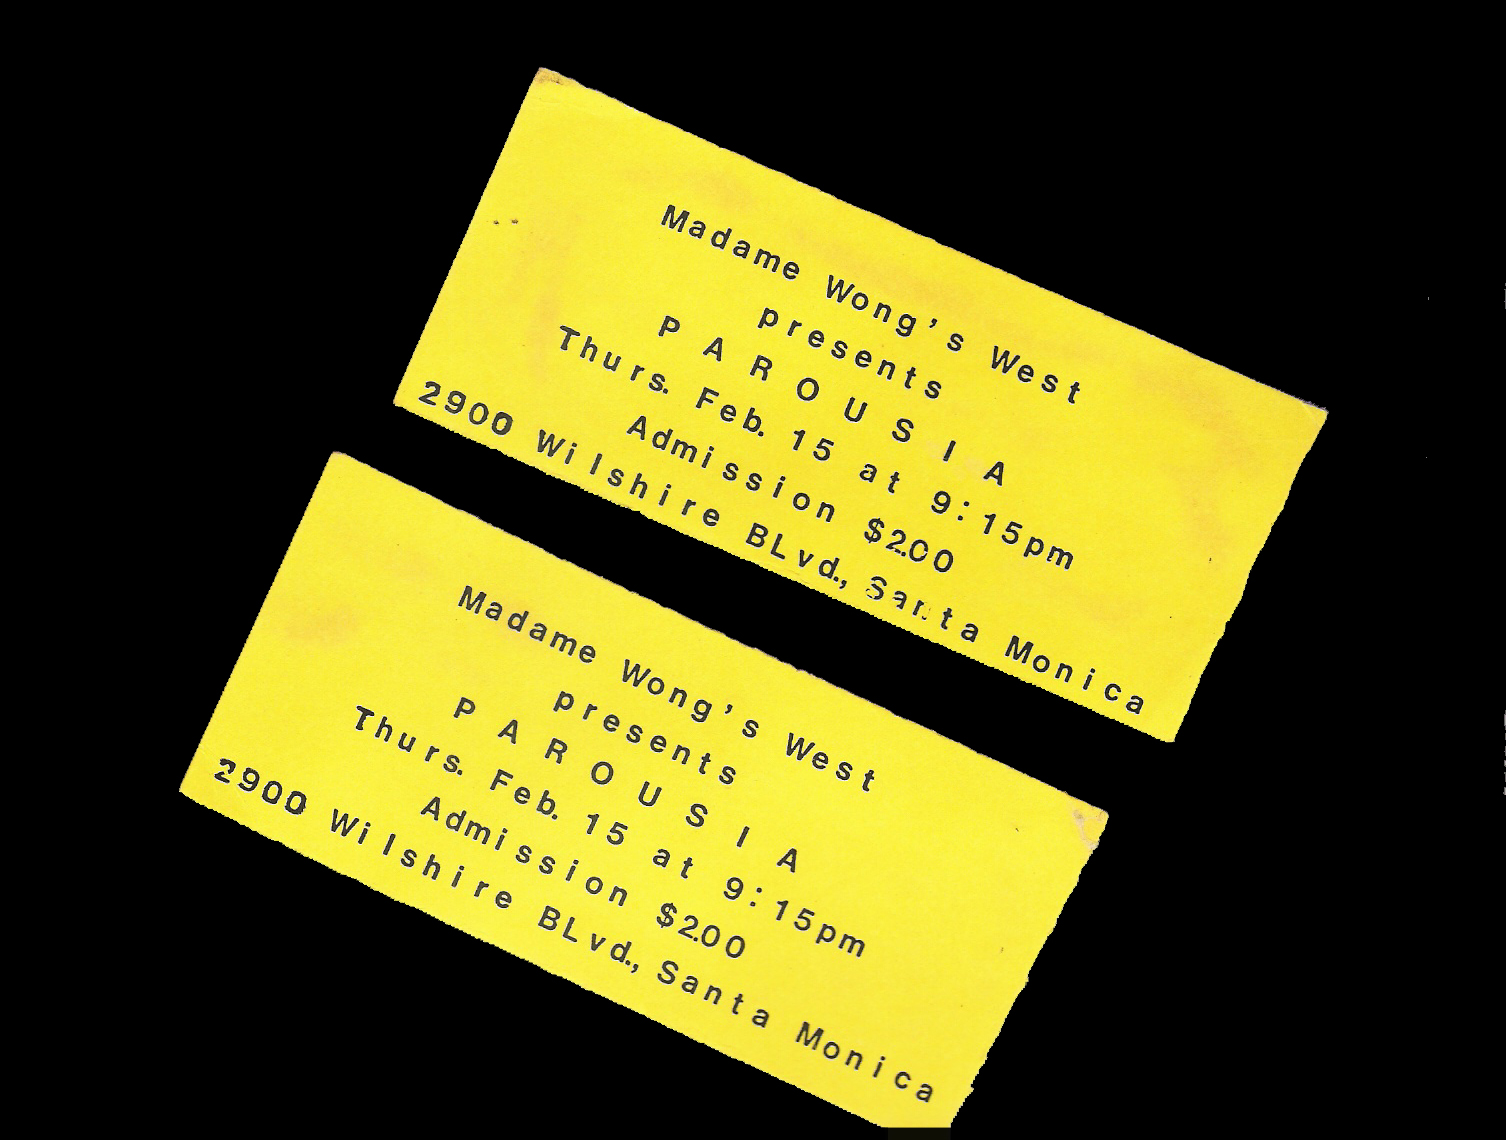 Tickets to Madame Wong's West 02.15.1990